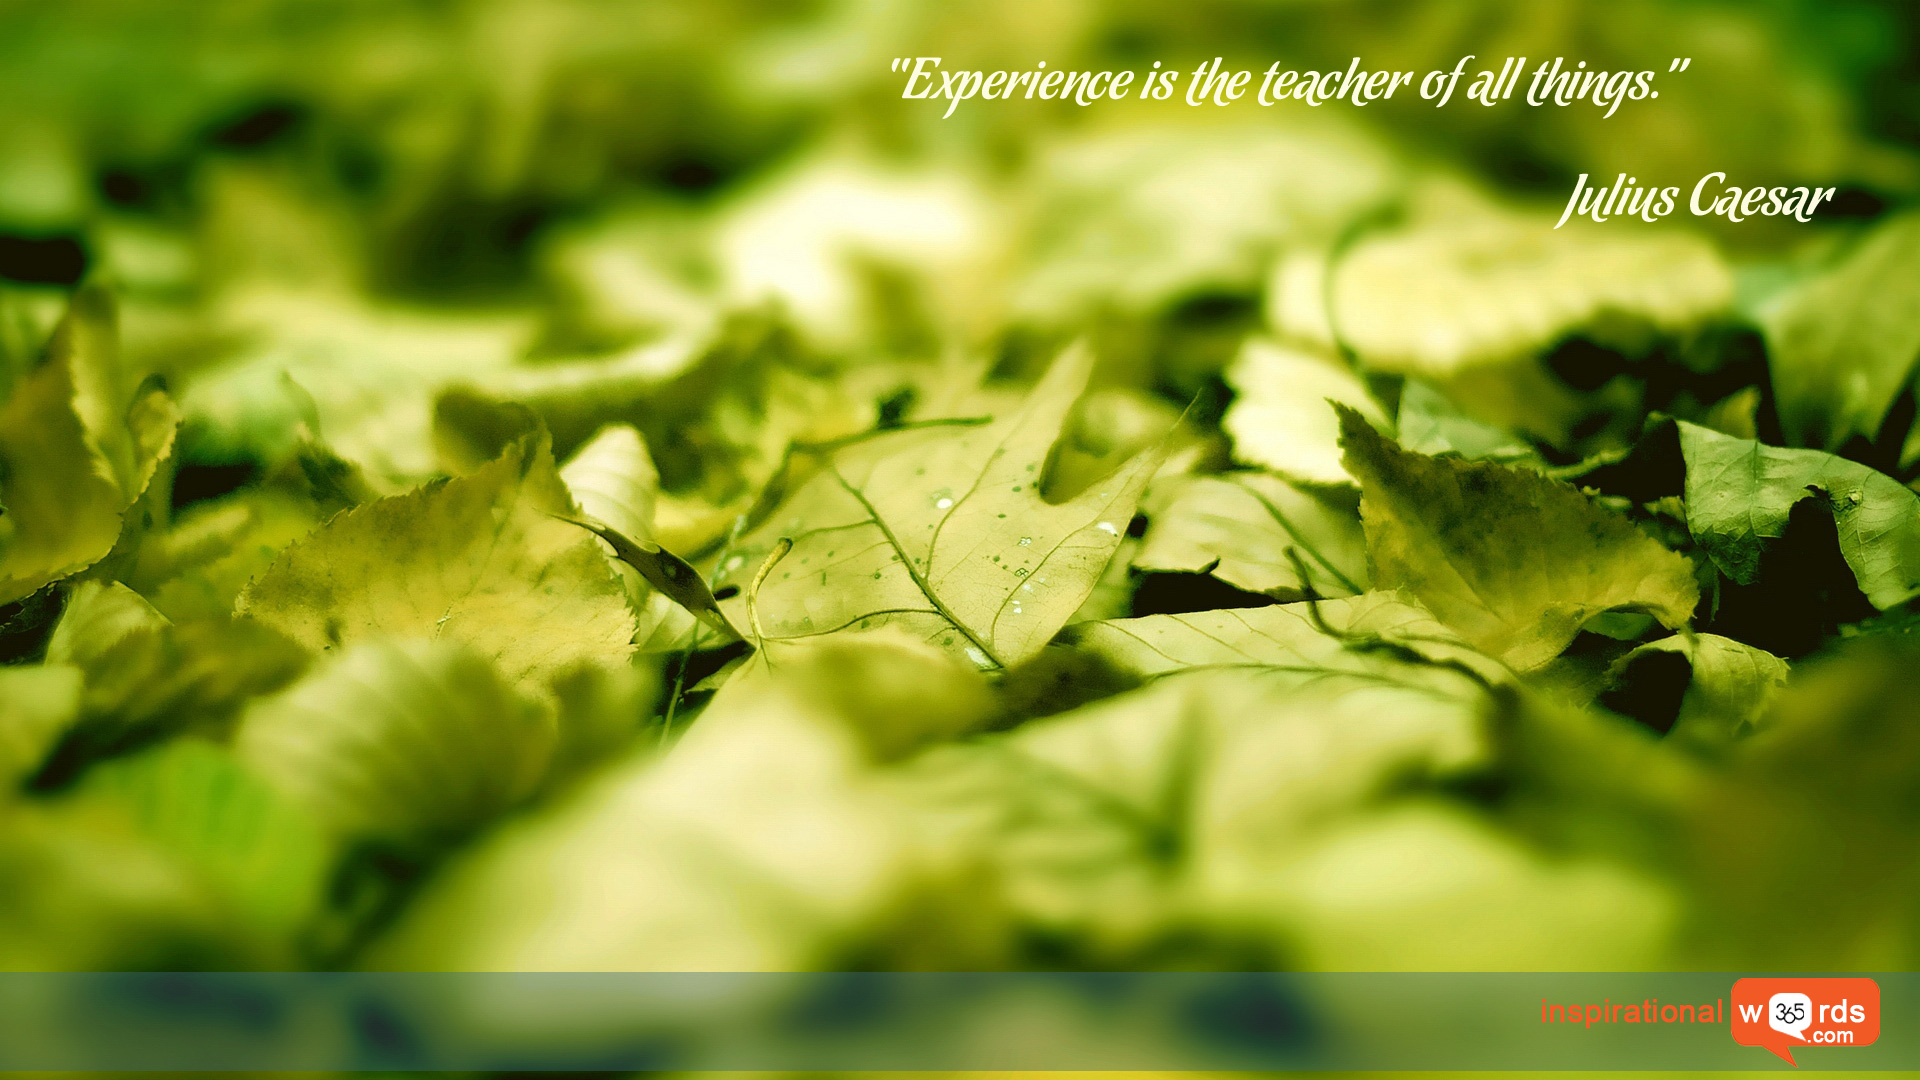 Inspirational Wallpaper Quote by Julius Caesar